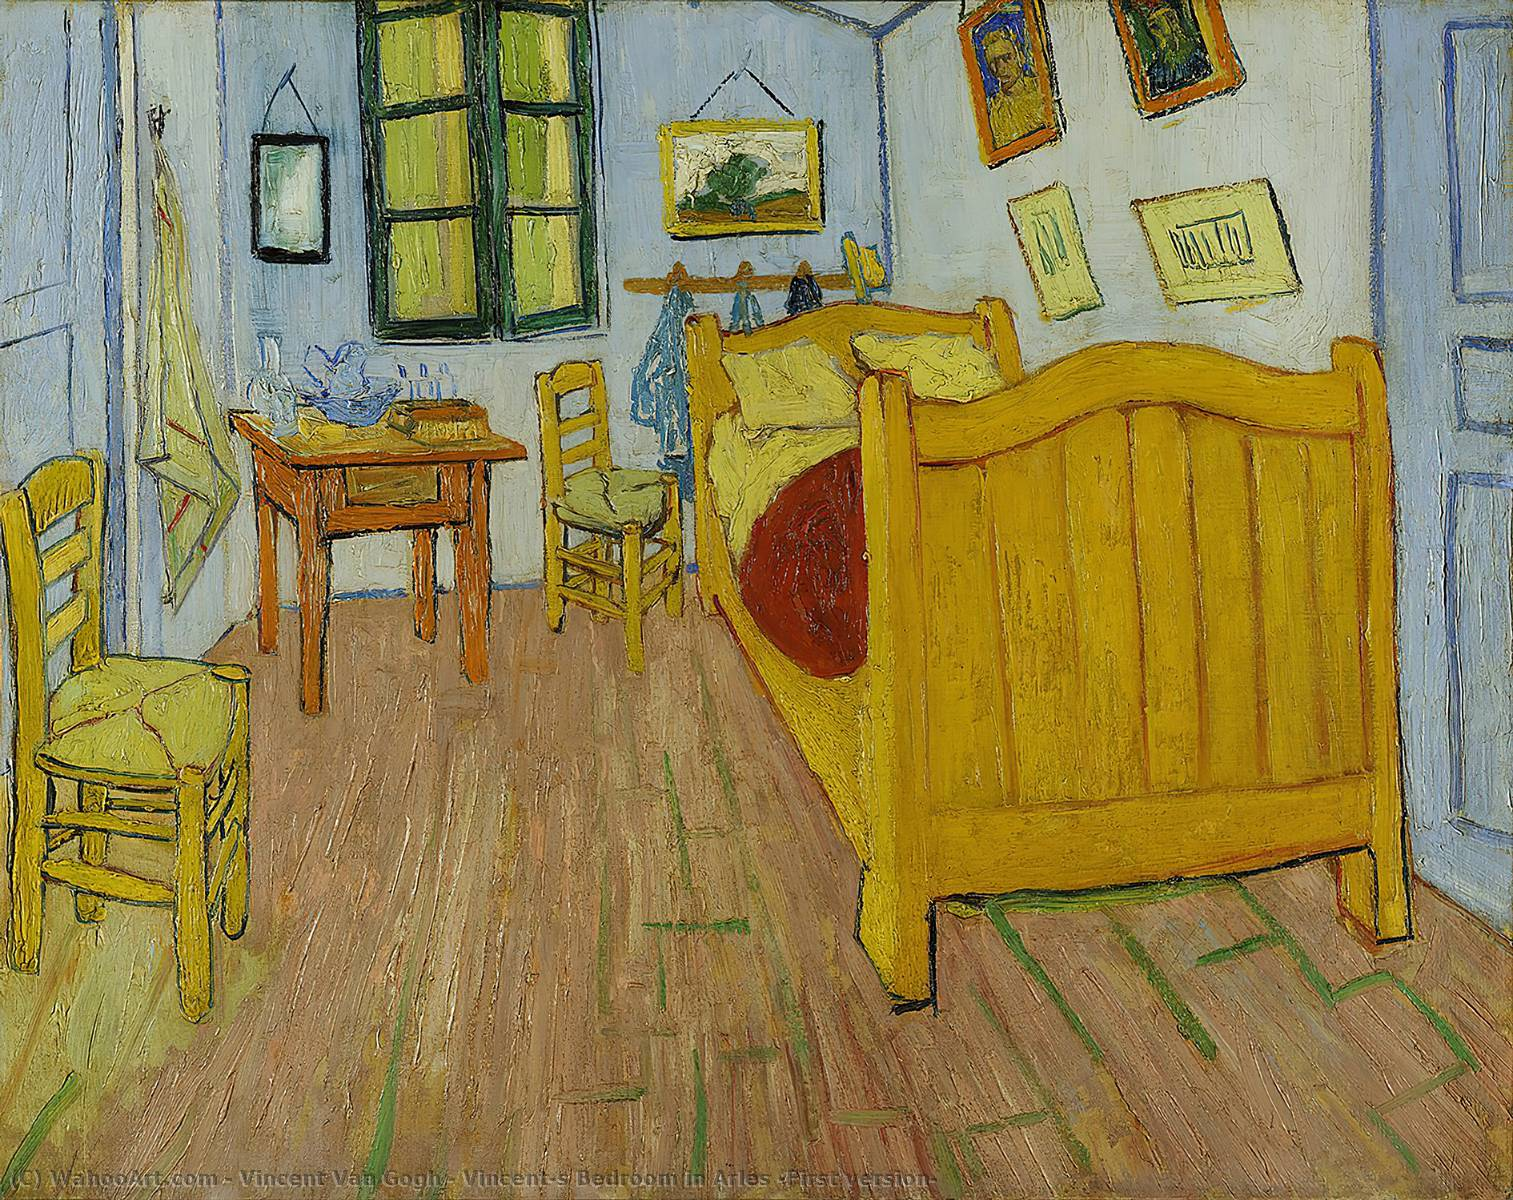 Ordinare Stampe Di Qualità Del Museo | Vincent's camera da letto ad arles ( Prima versione ) di Vincent Van Gogh | Most-Famous-Paintings.com